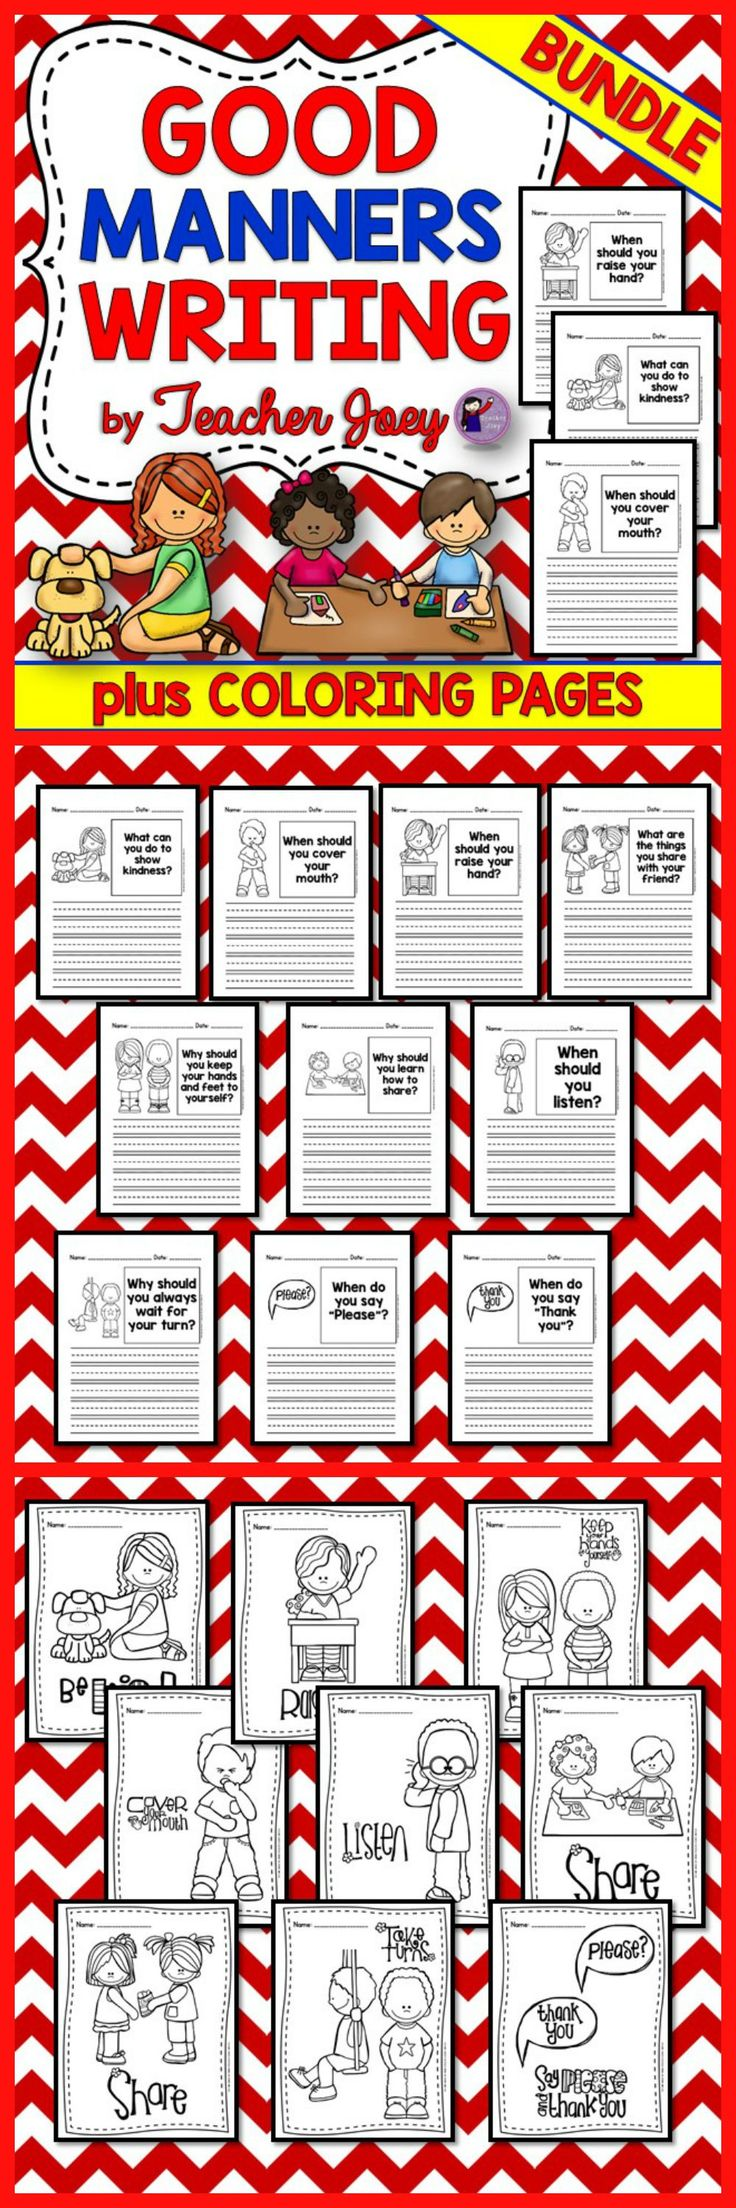 social skills writing prompts 14 simple conversation social skills kits for children with autism: free games, prompts, worksheets, activities.